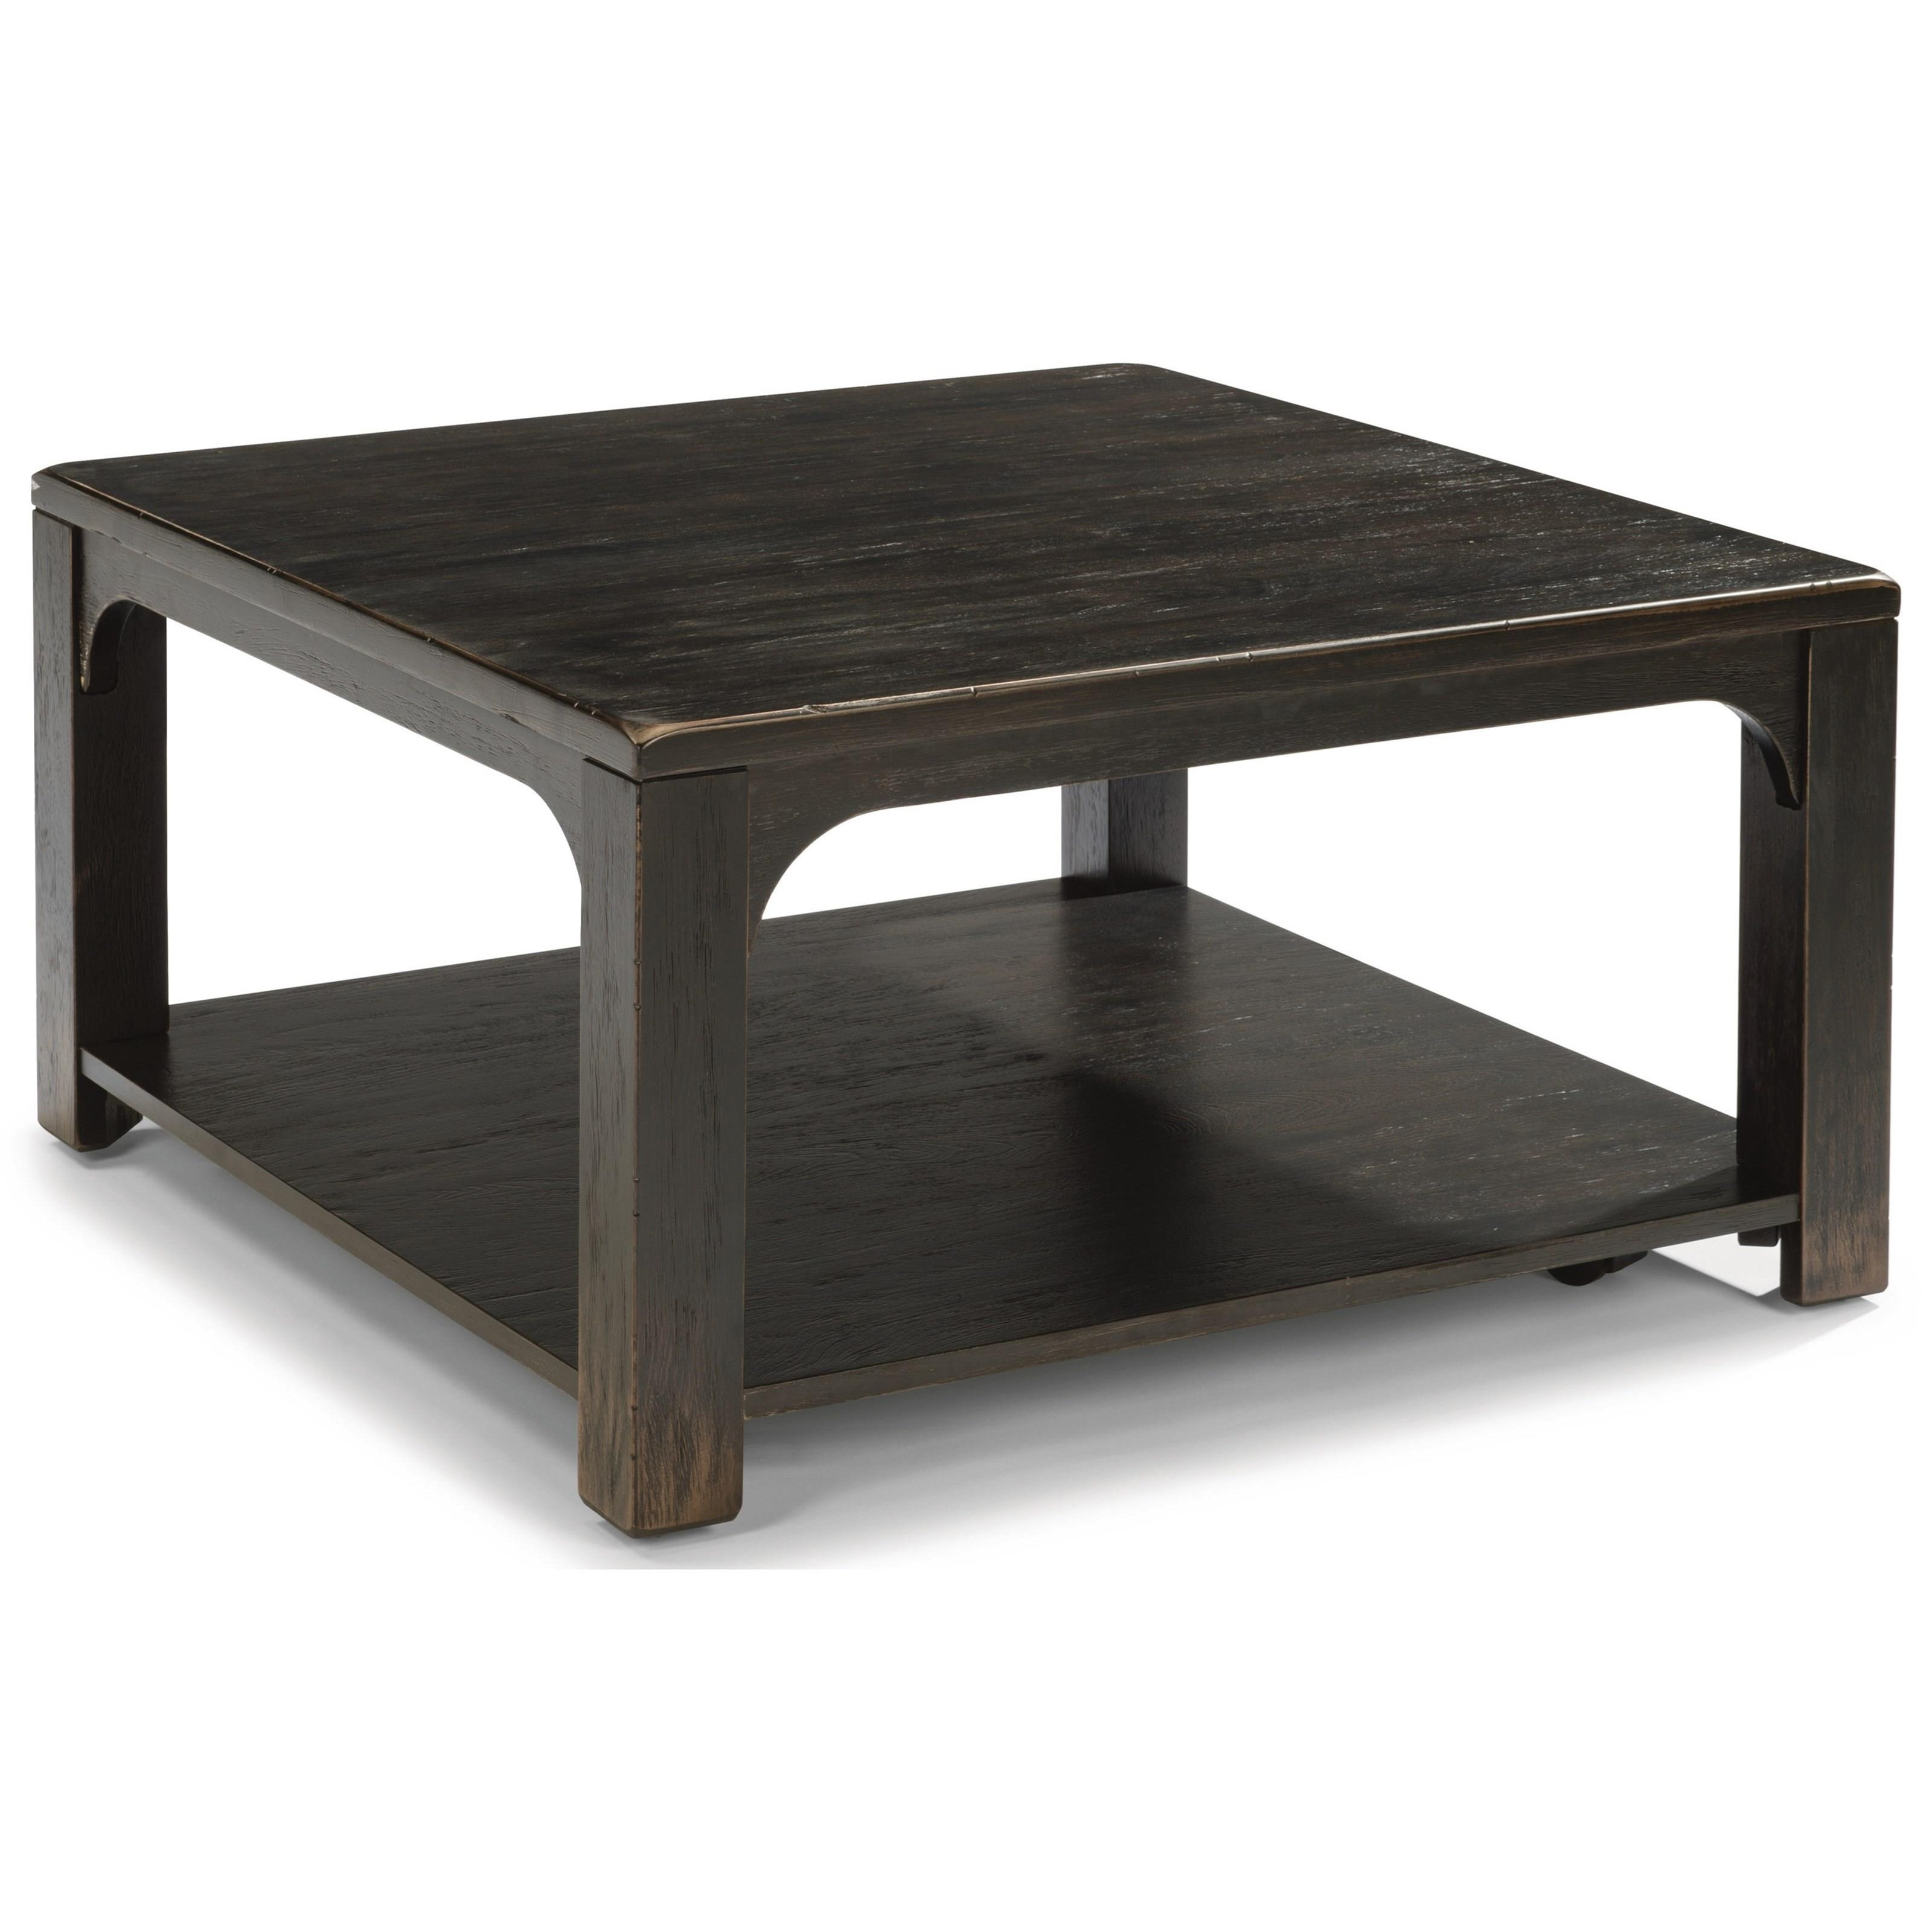 Flexsteel wynwood collection homestead rustic square for Square cocktail table